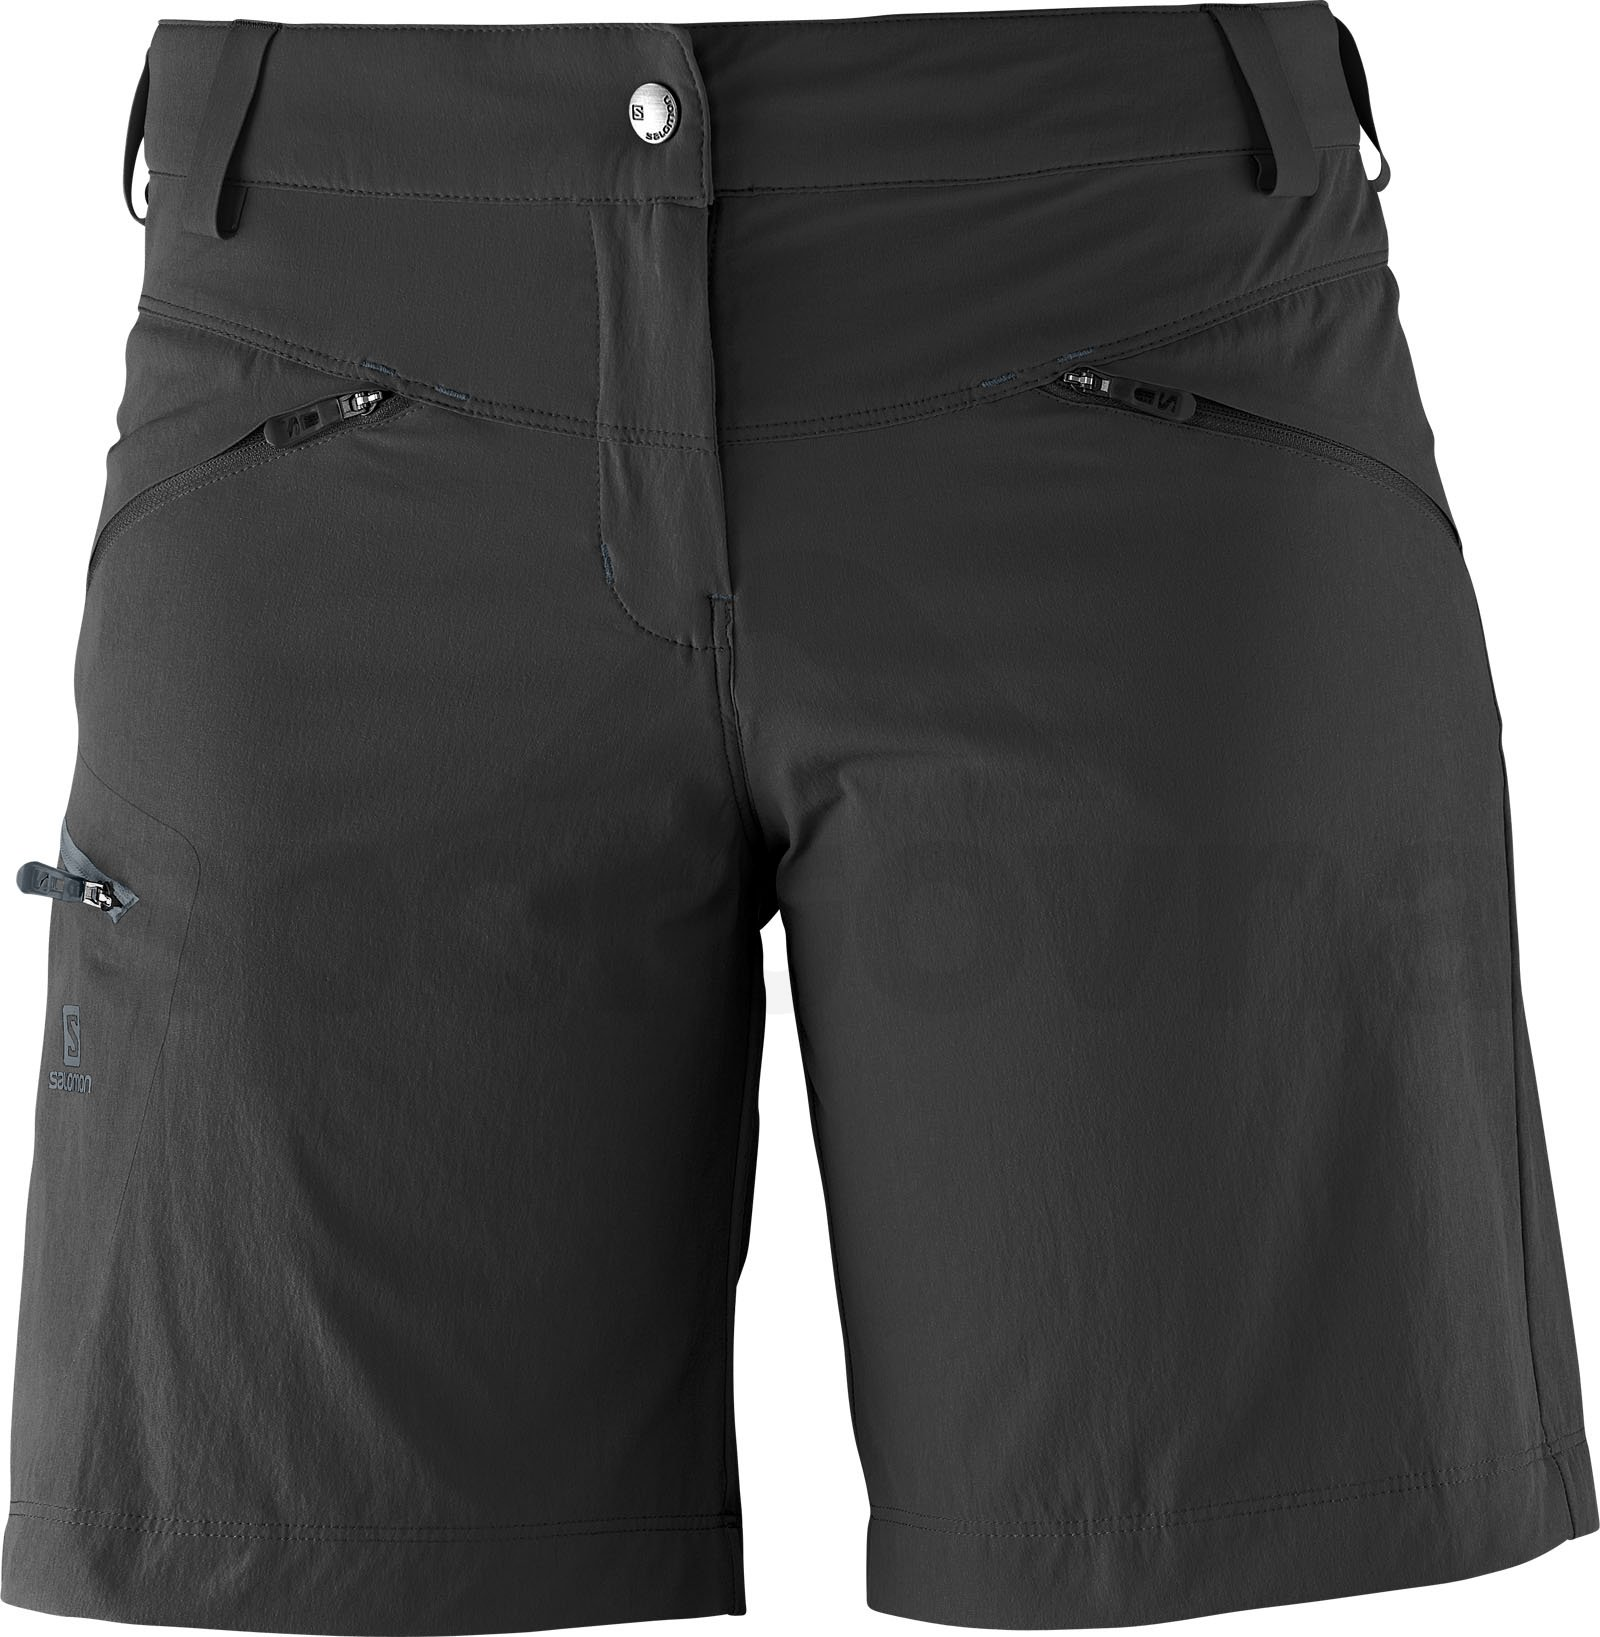 L36340600_0_WAYFARER_SHORT_W_black__Women.jpg.originaln